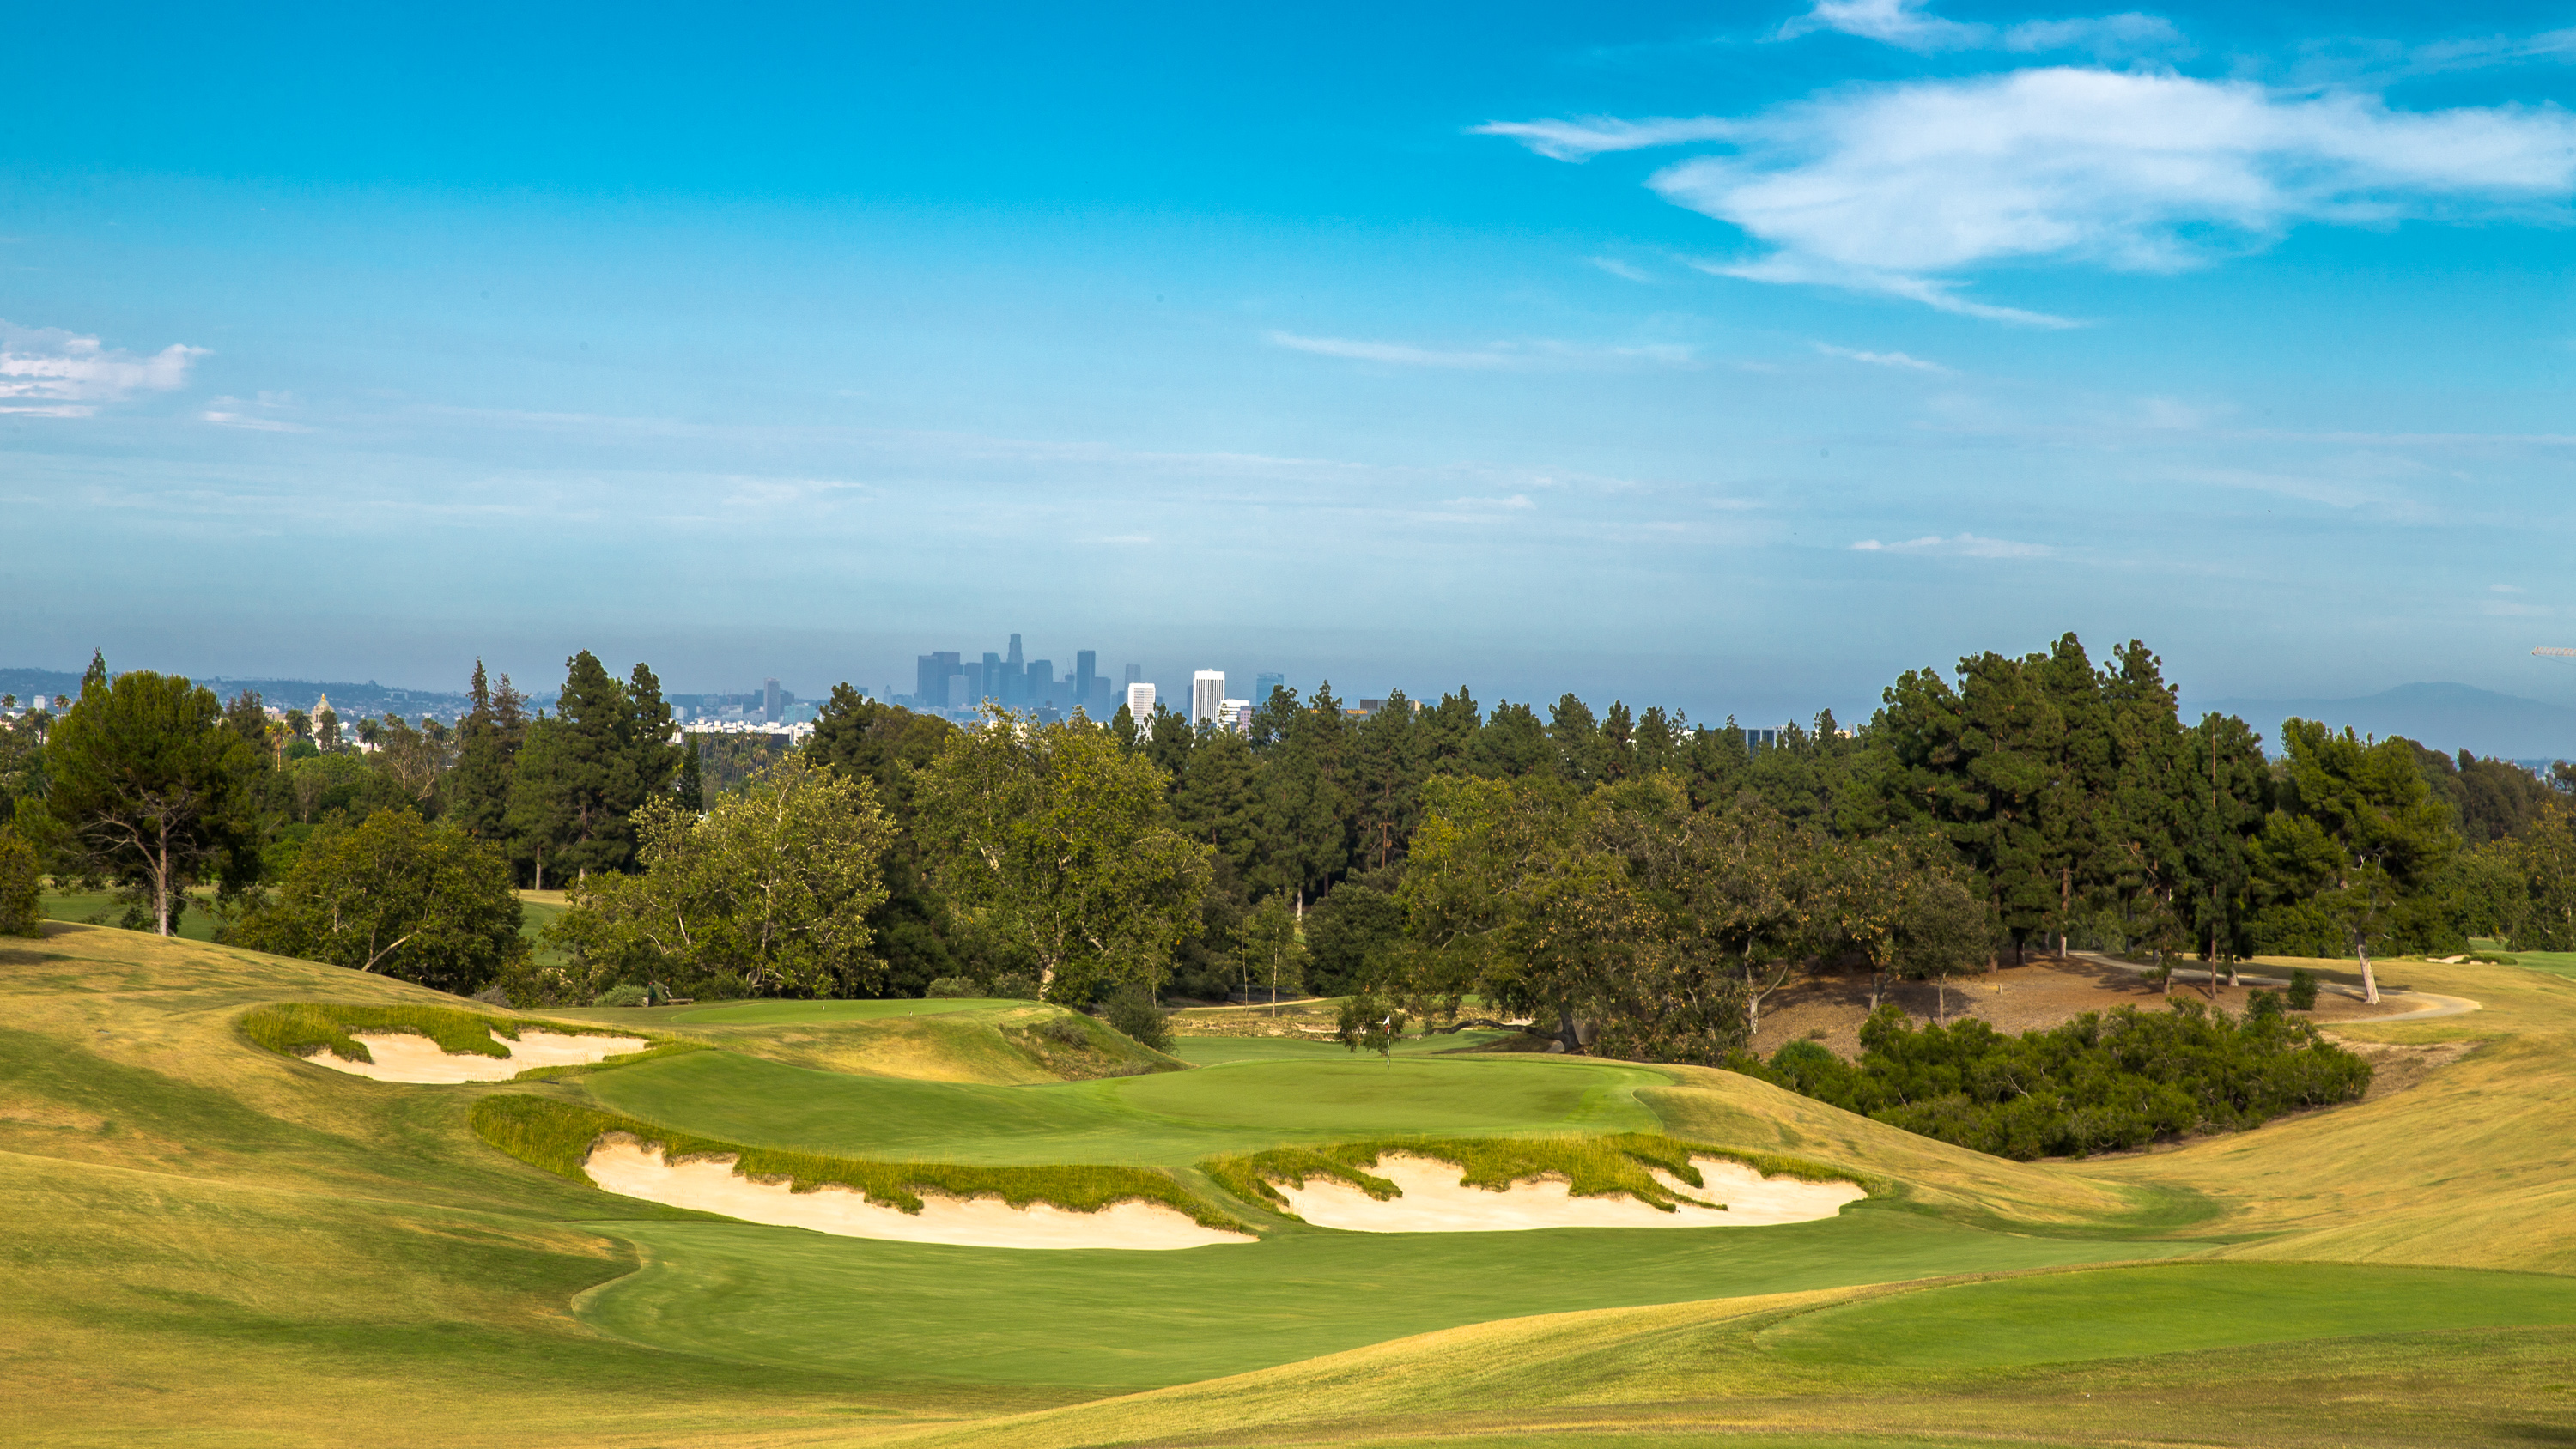 Us open golf 2019 dates in Perth